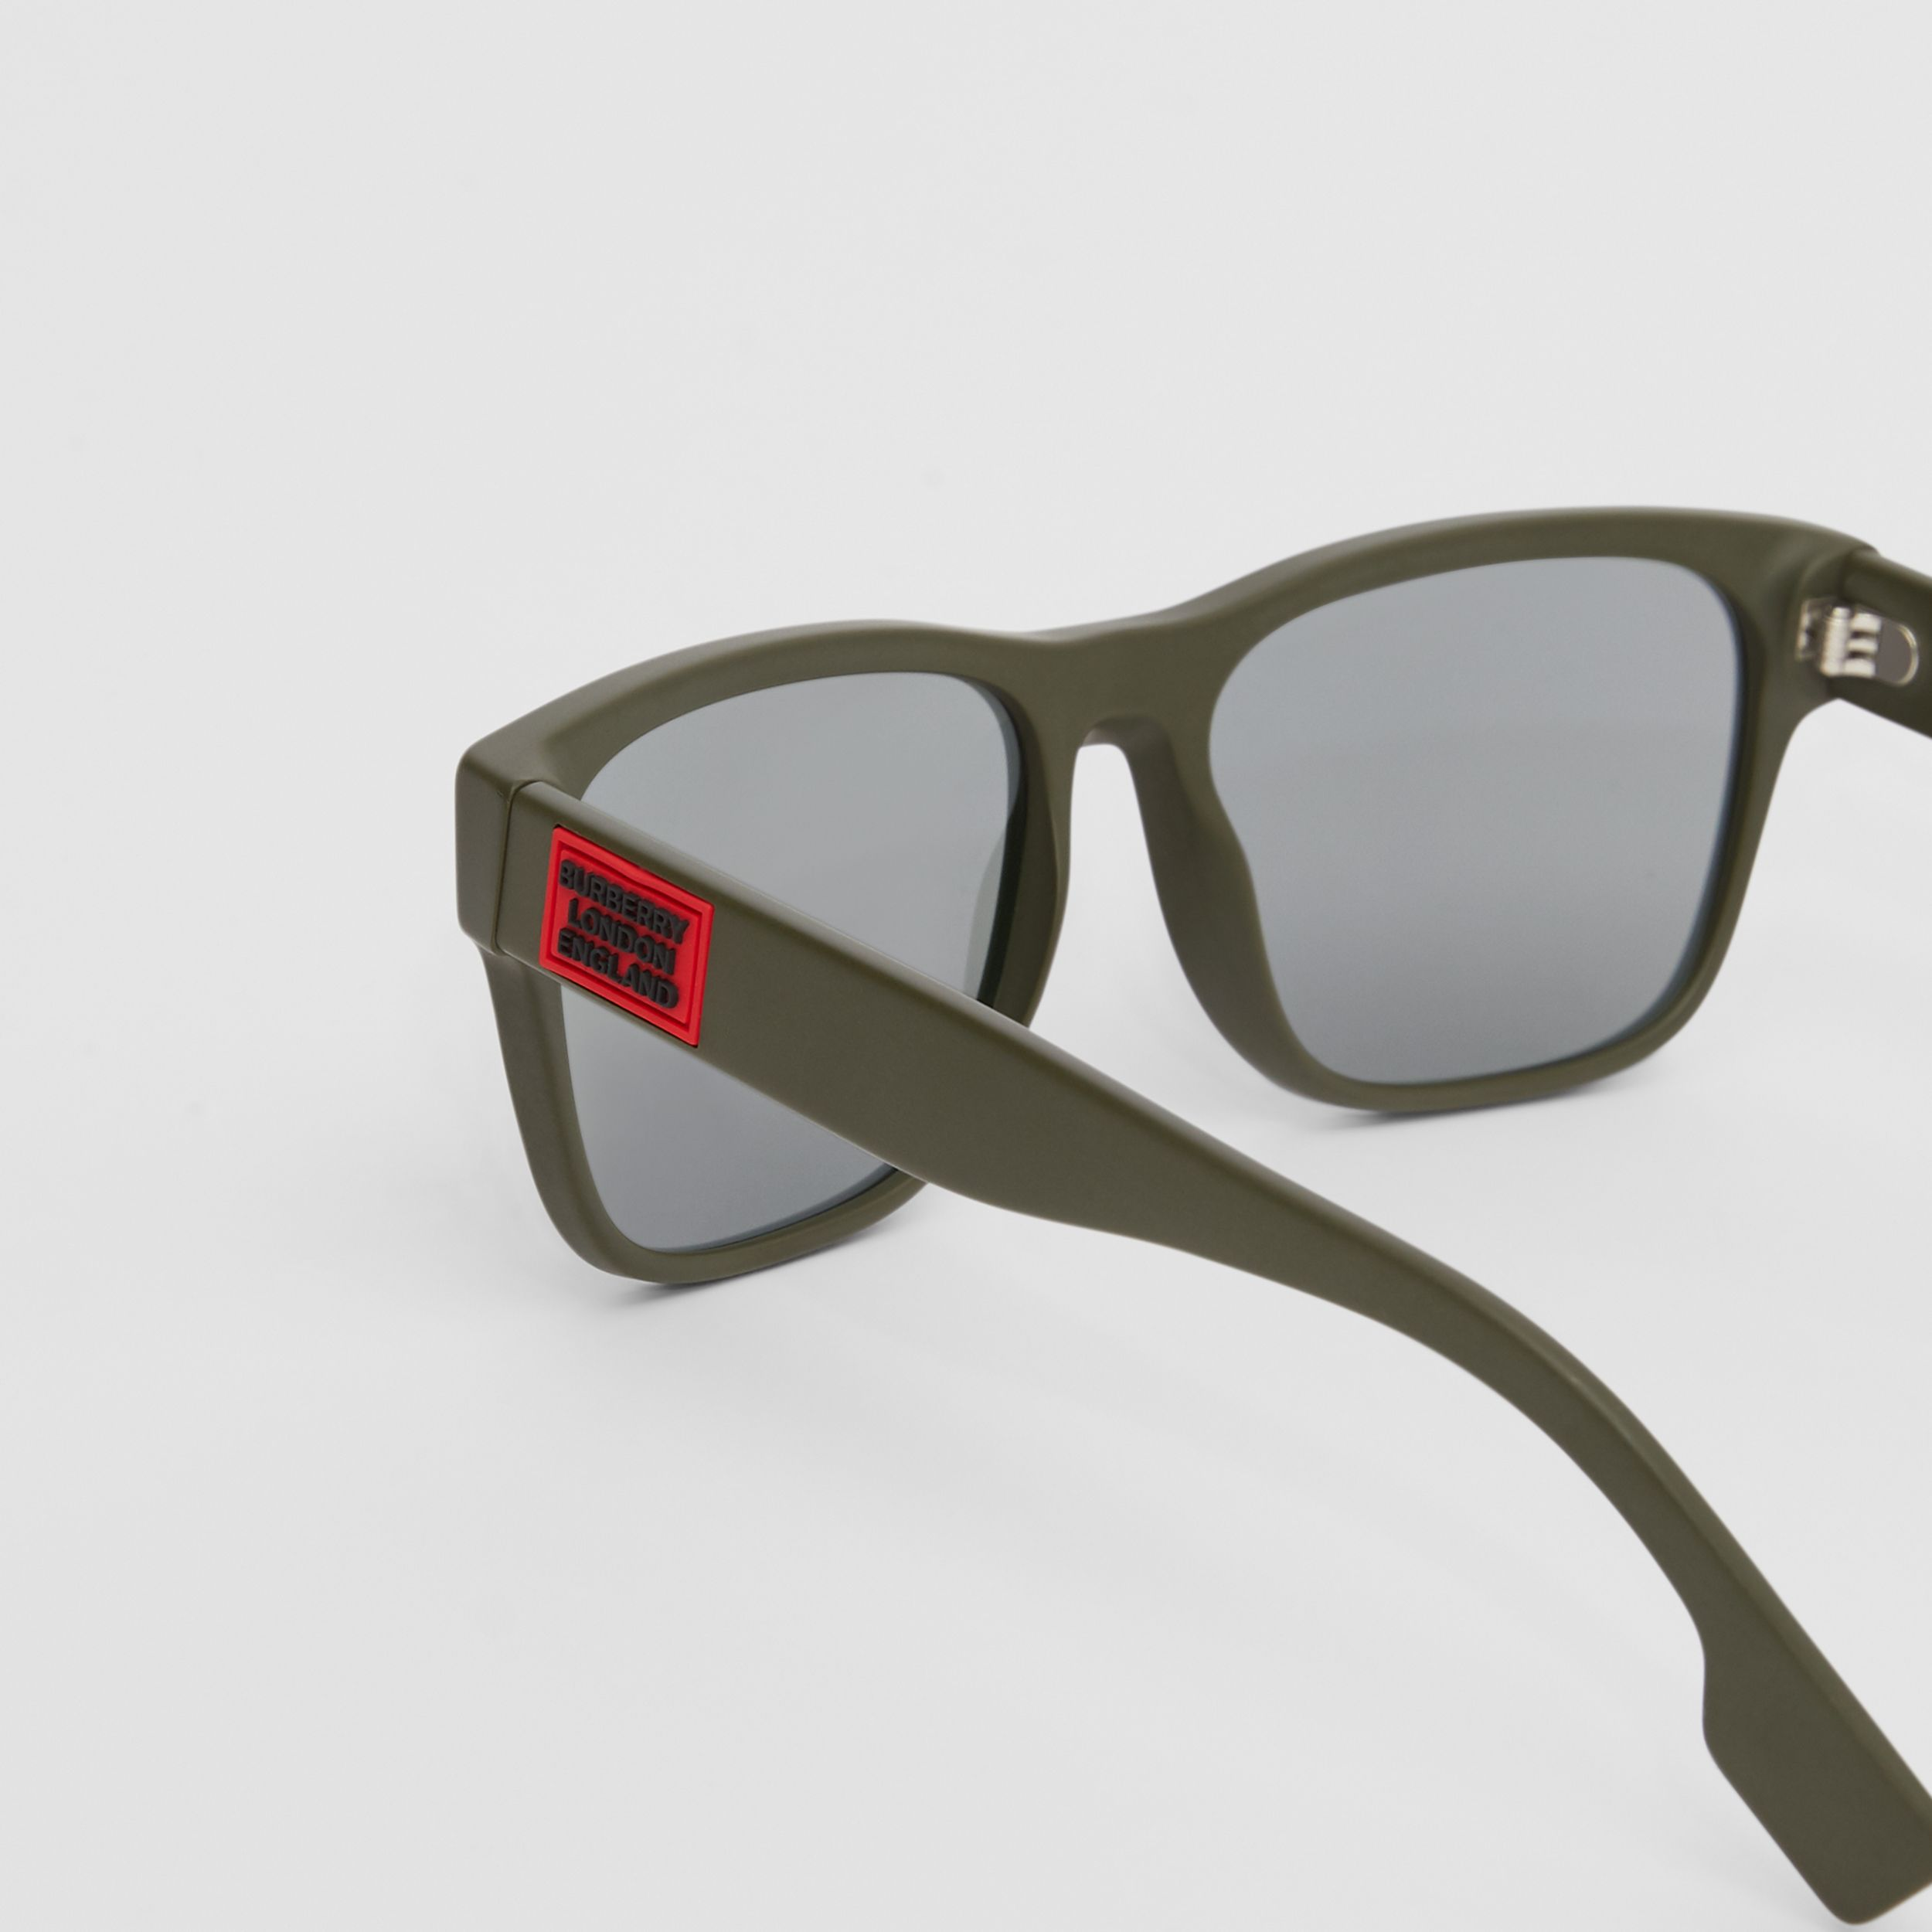 Logo Appliqué Square Frame Sunglasses in Military Green - Men | Burberry United States - 2